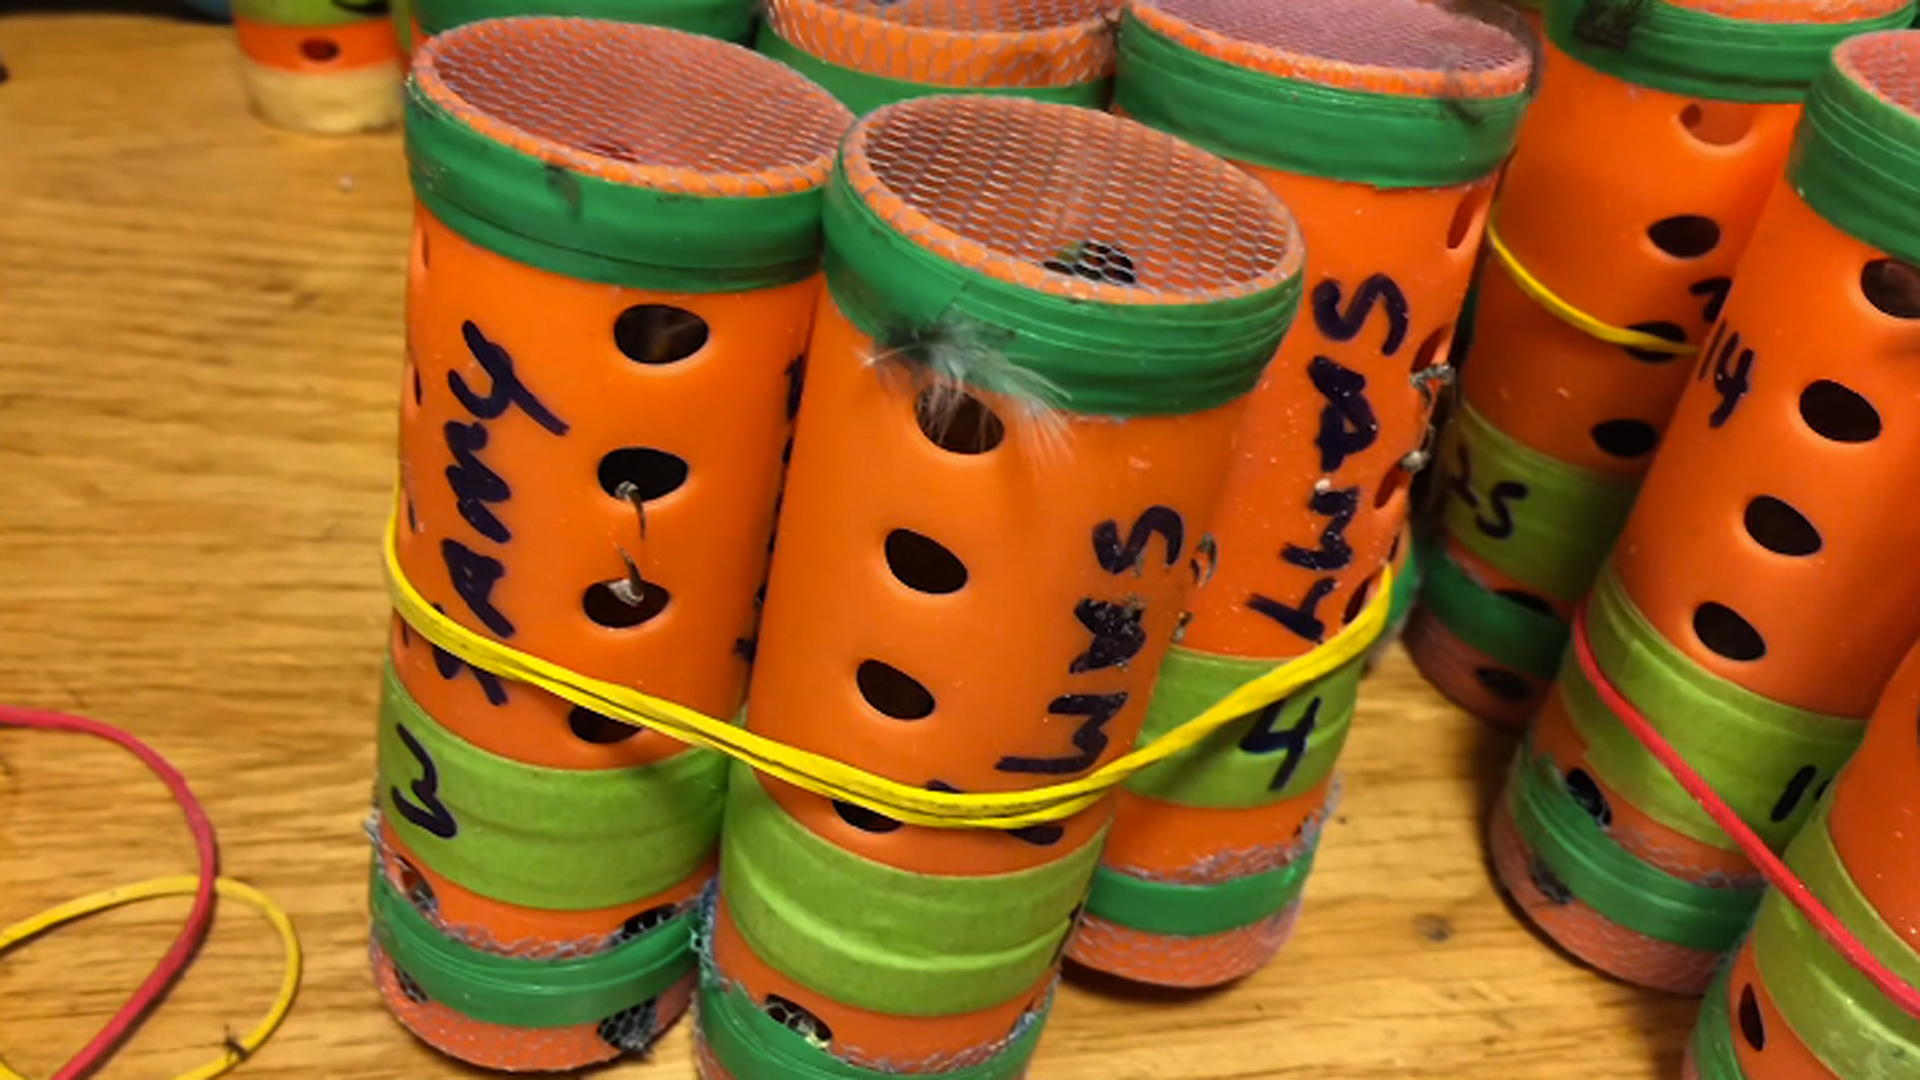 Dozens of finches were found hidden inside hair rollers at JFK Airport on Dec. 8, 2018. (Credit: (U.S. Customs and Border Protection via CNN)